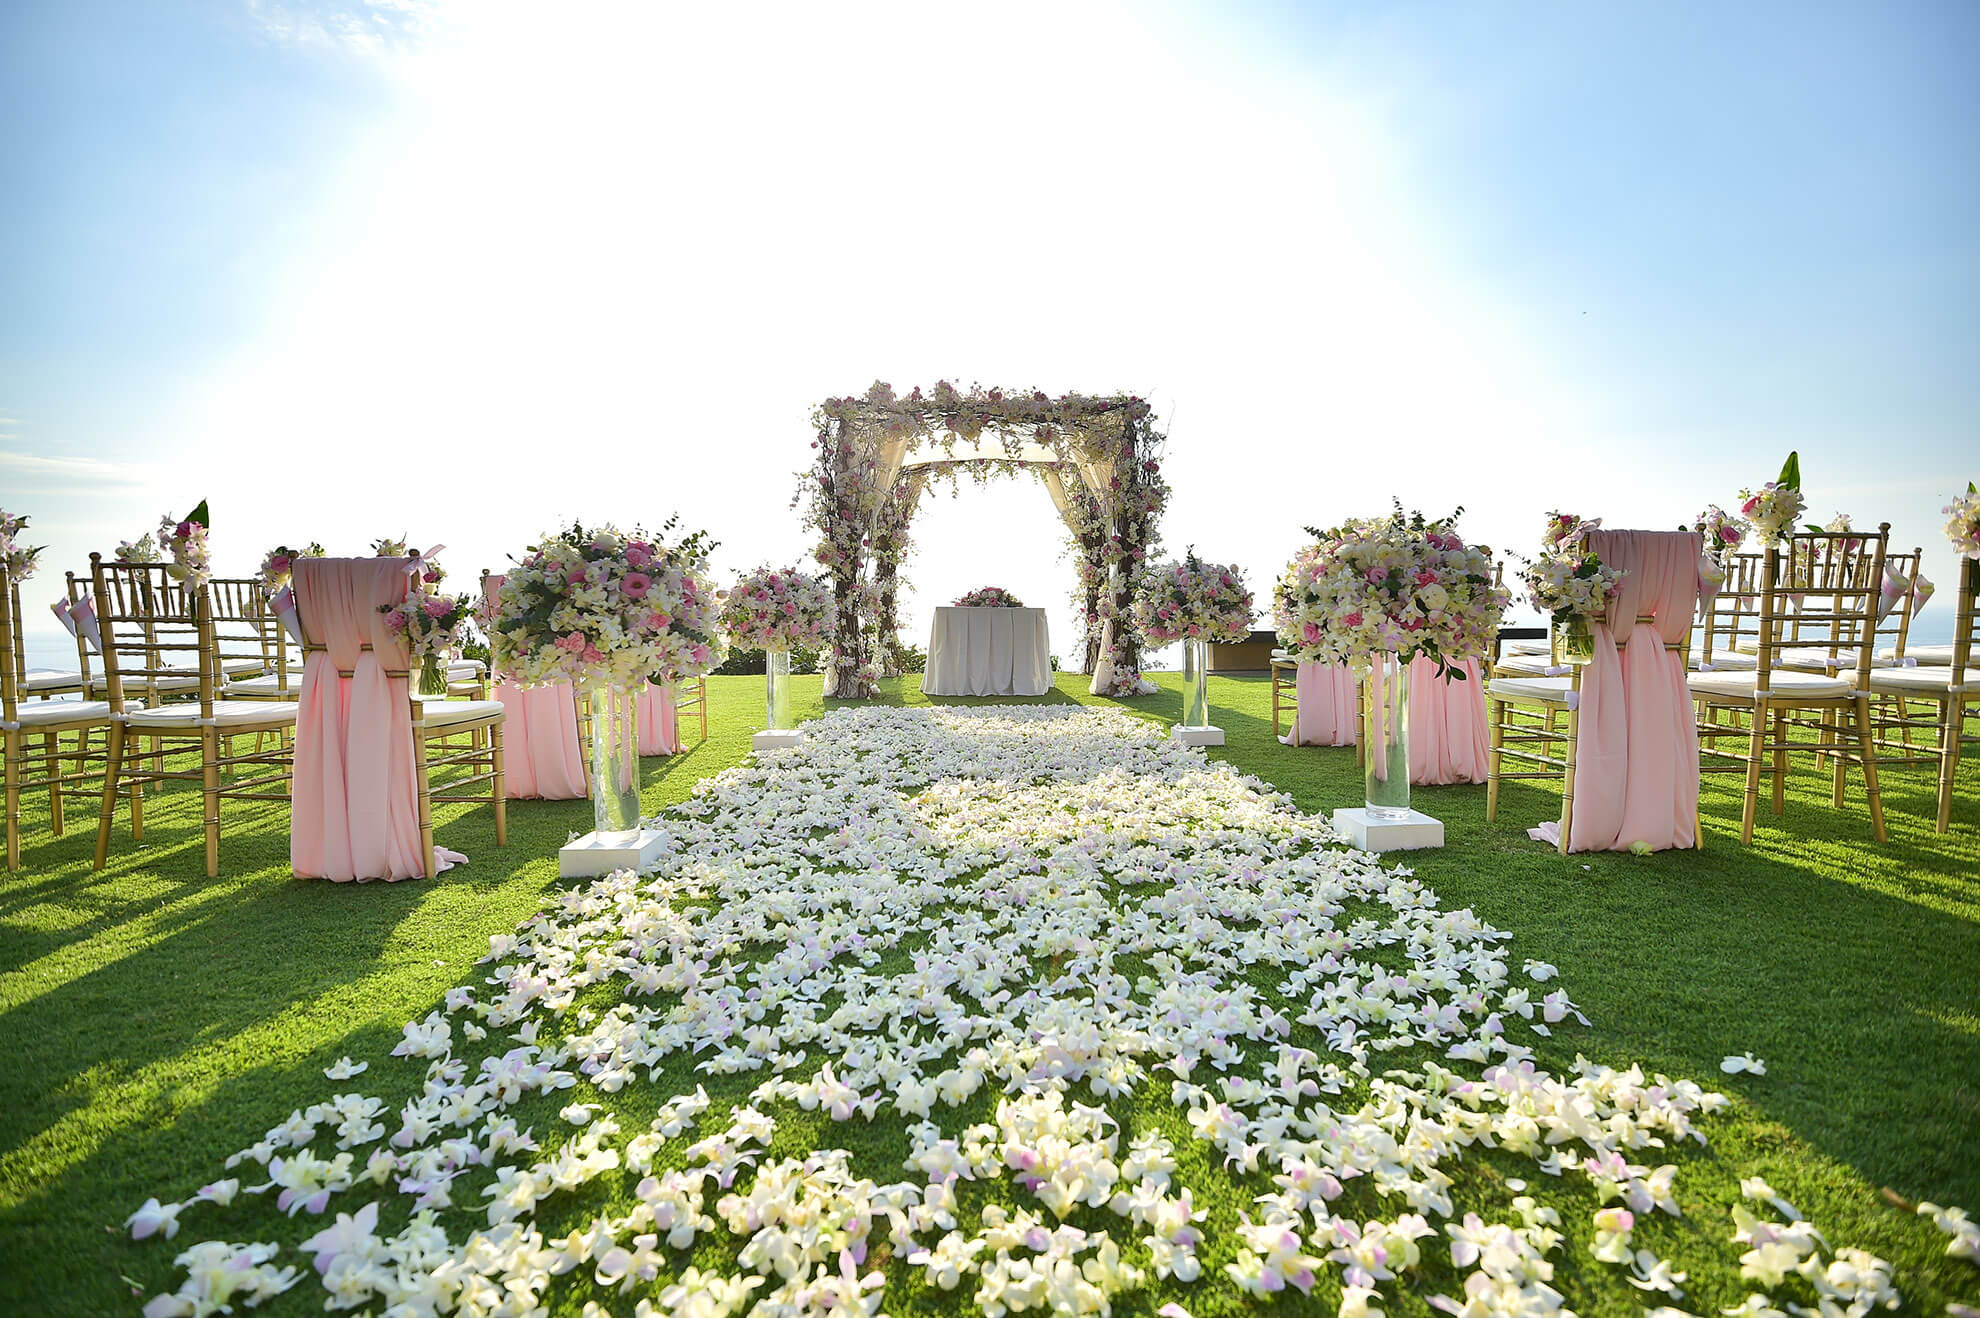 Wedding venues in utah salt lake bride blog salt lake bride lets take a look at what goes into choosing the right wedding venue for you and some of our local suggestions junglespirit Choice Image